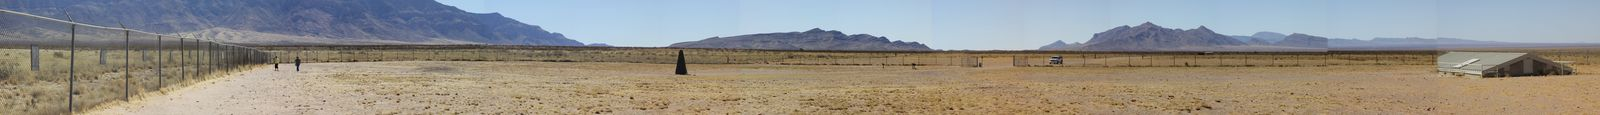 Photo: Panoramic view of the Trinity Site looking Southwest from the fence with the photographic images to the obelisk to the gate and finally to the bunker.